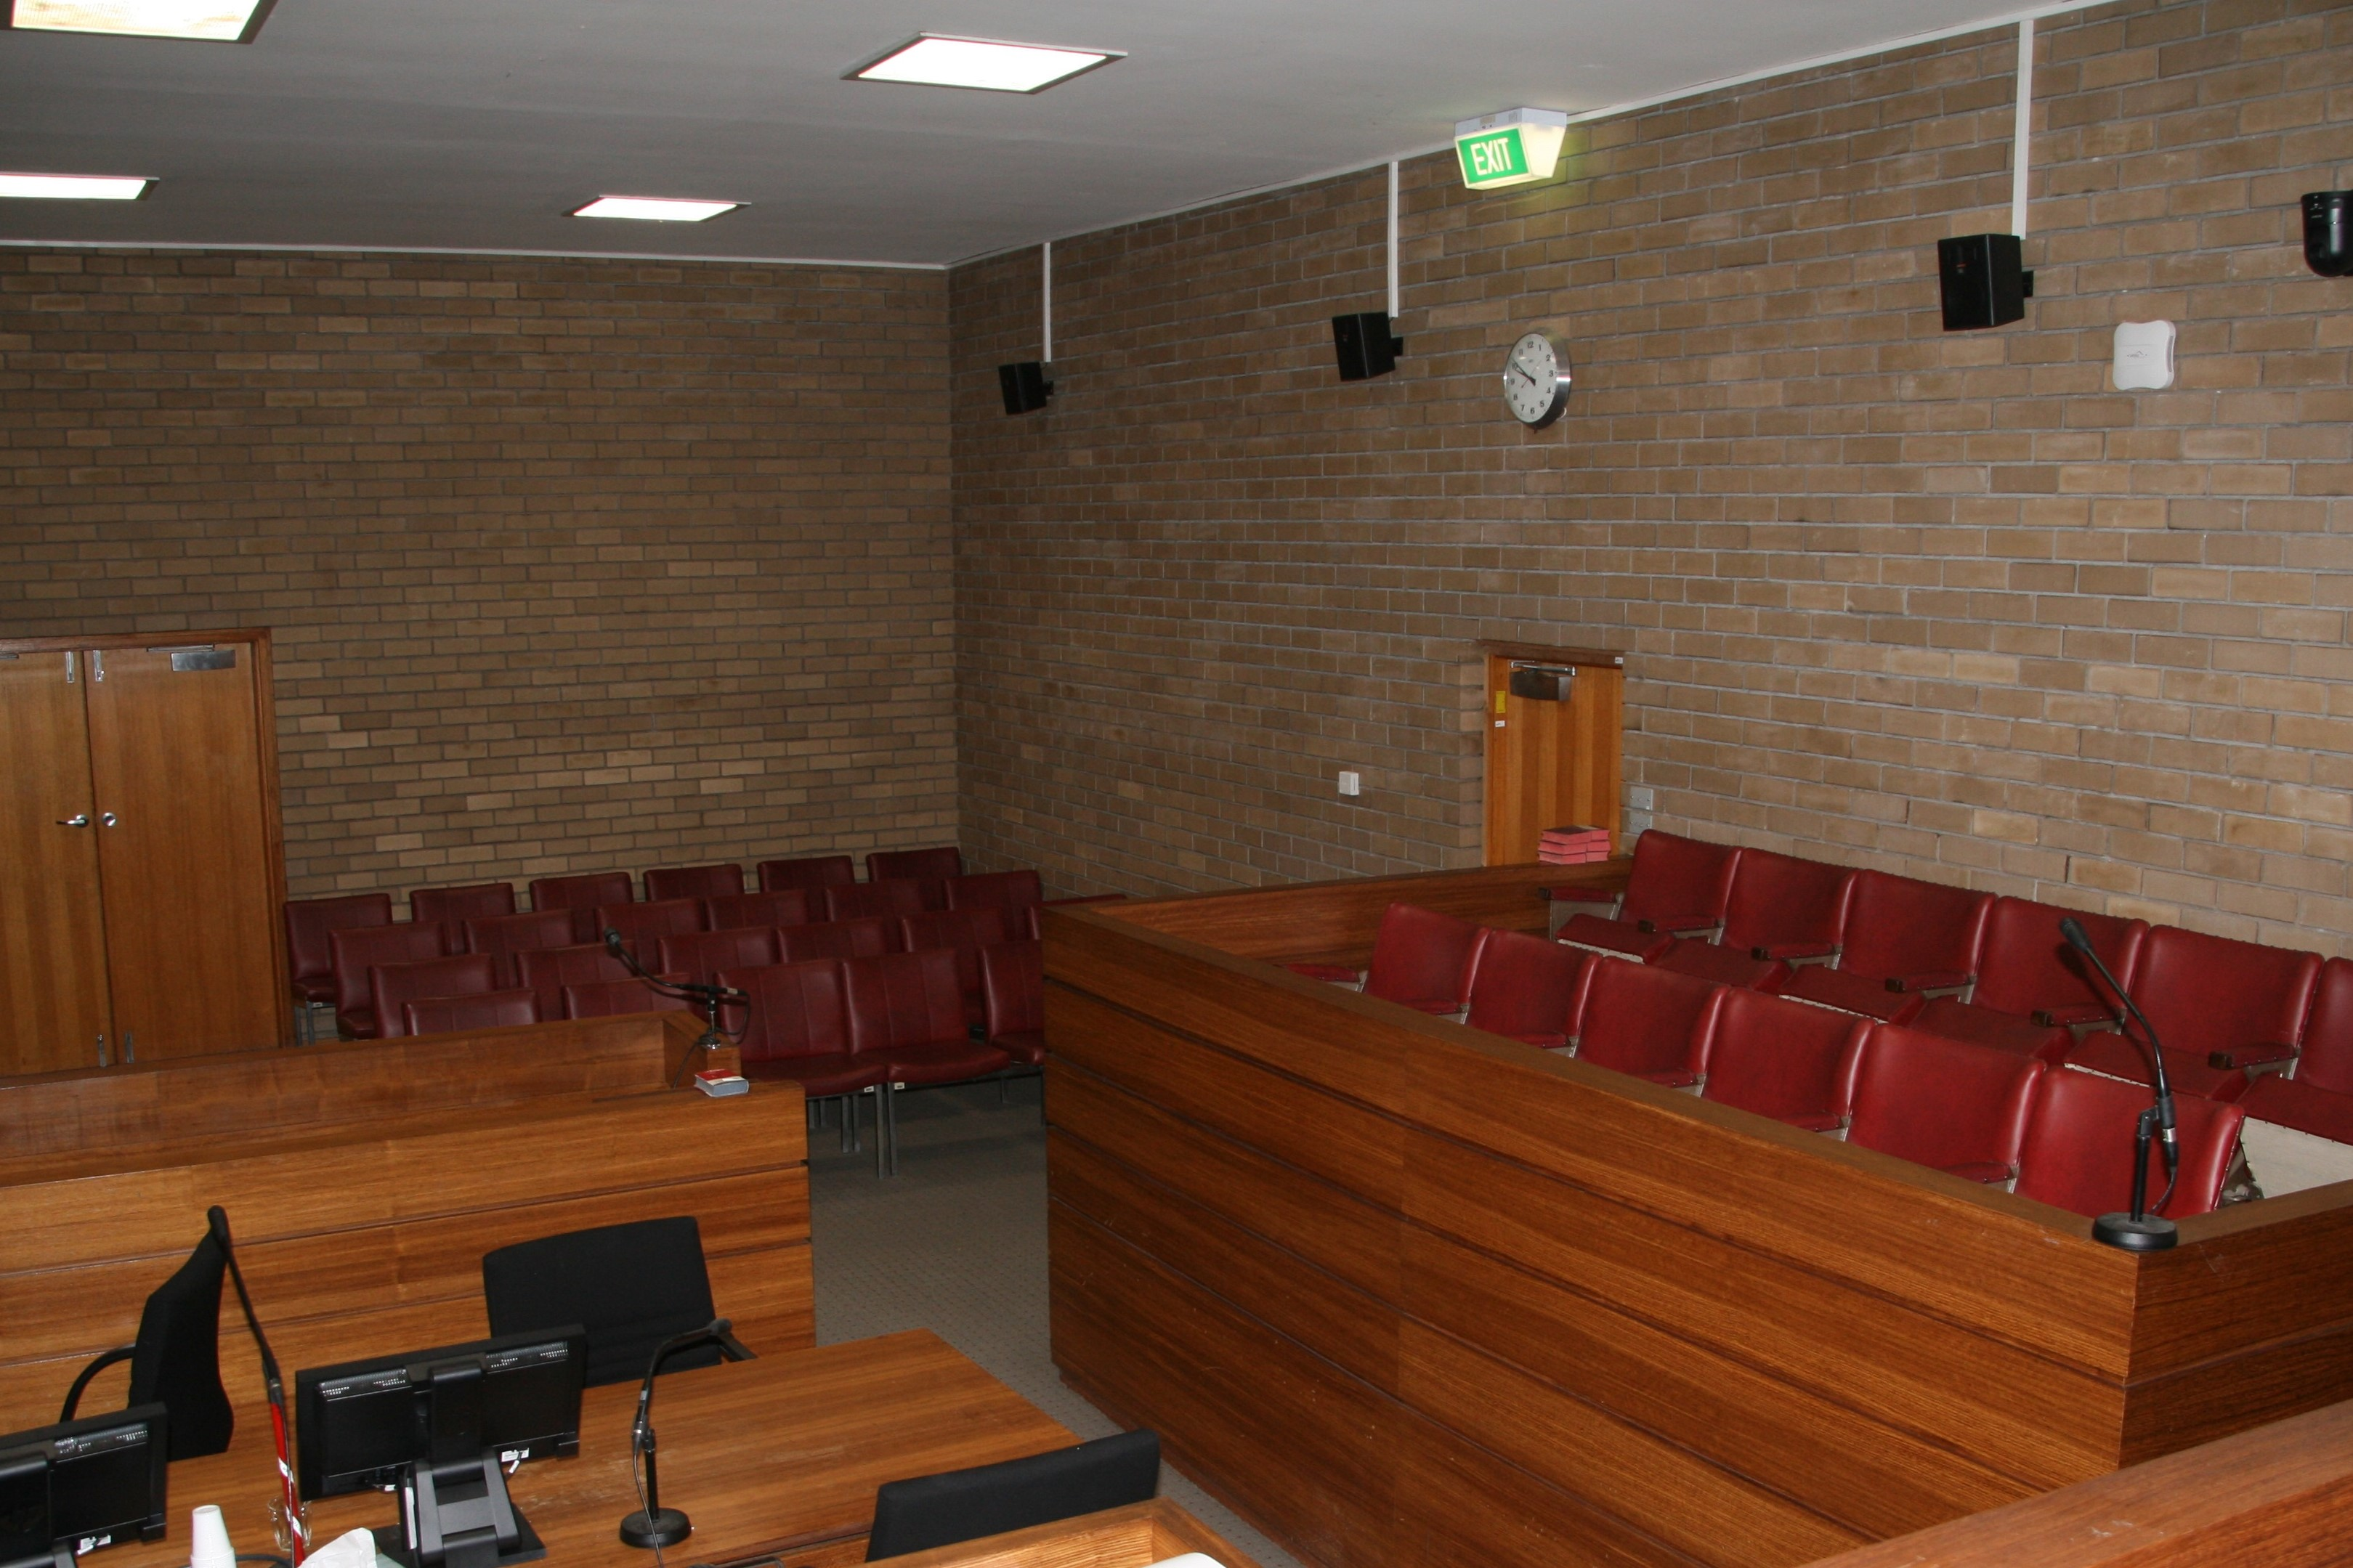 Courtroom inside Horsham Magistrates' Court